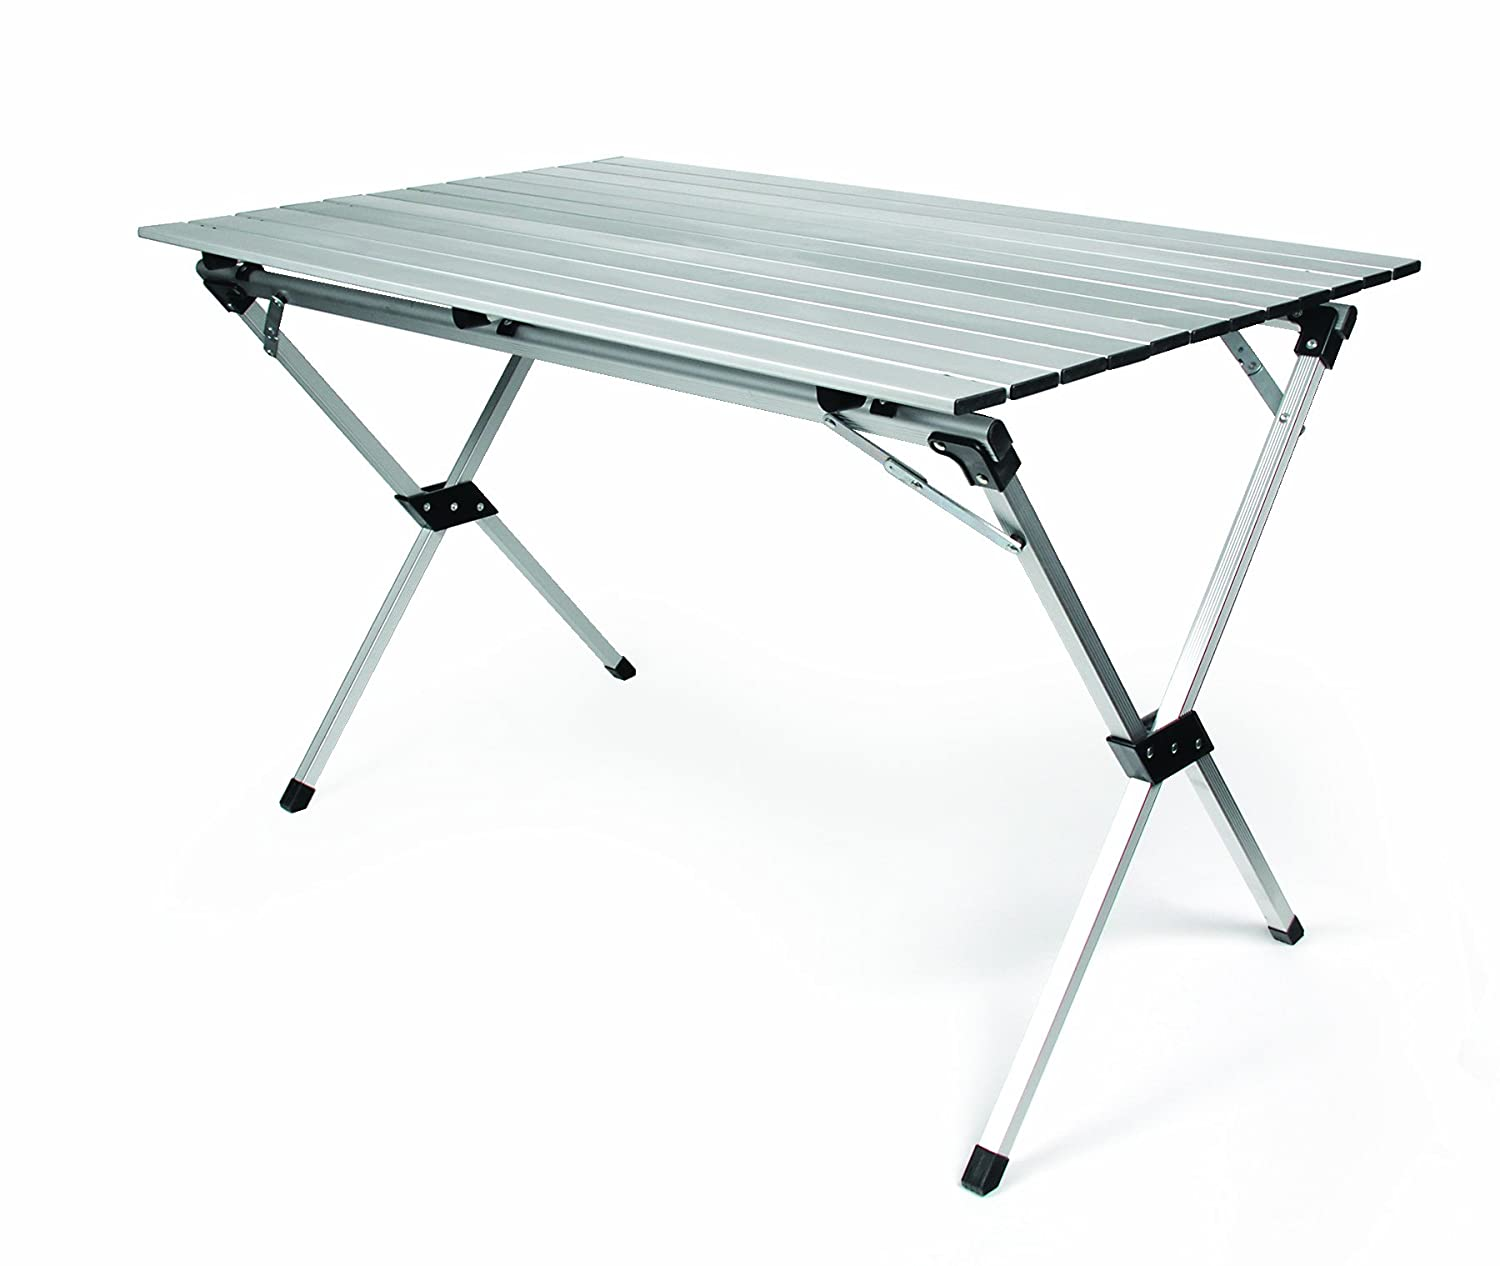 Camco Aluminum Roll-Up Campsite Table with Carrying Bag – Ideal for Tailgating, Camping, The Beach, Parties and More, Lightweight Design, Durable and Rust Resistant 51892